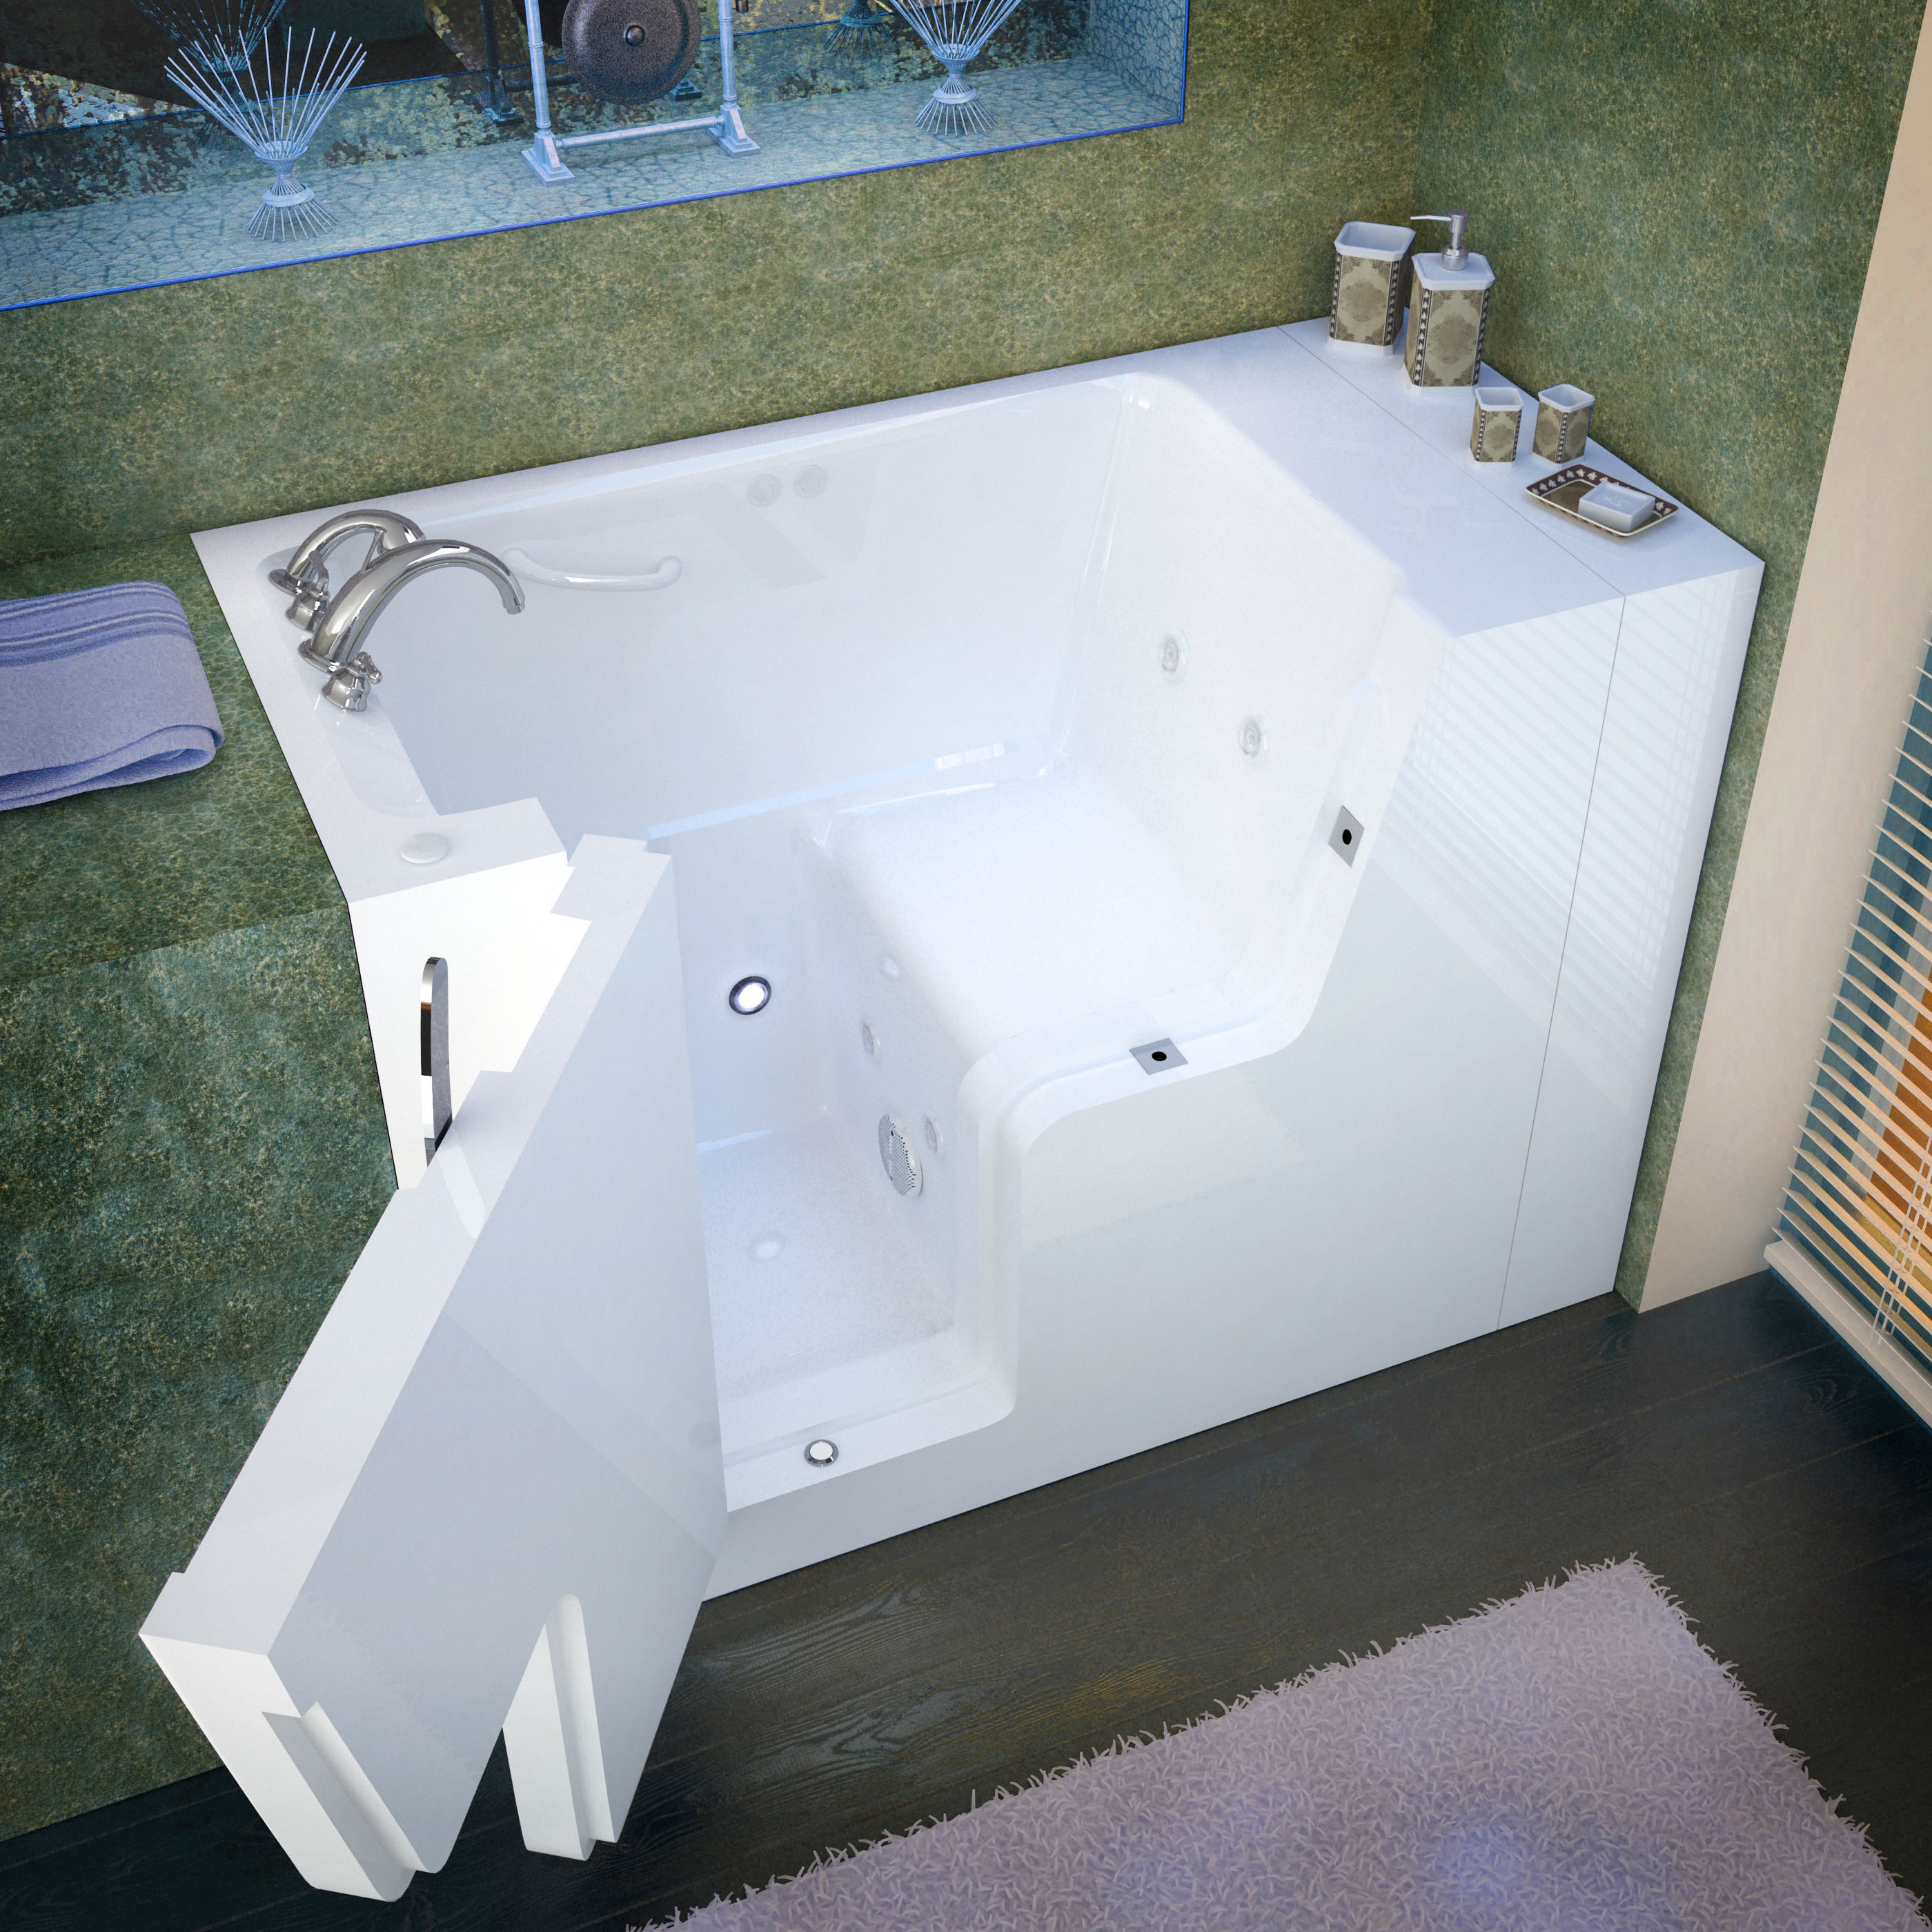 29x53 Left Drain White Whirlpool Jetted Wheelchair Accessible Walk-In Bathtub